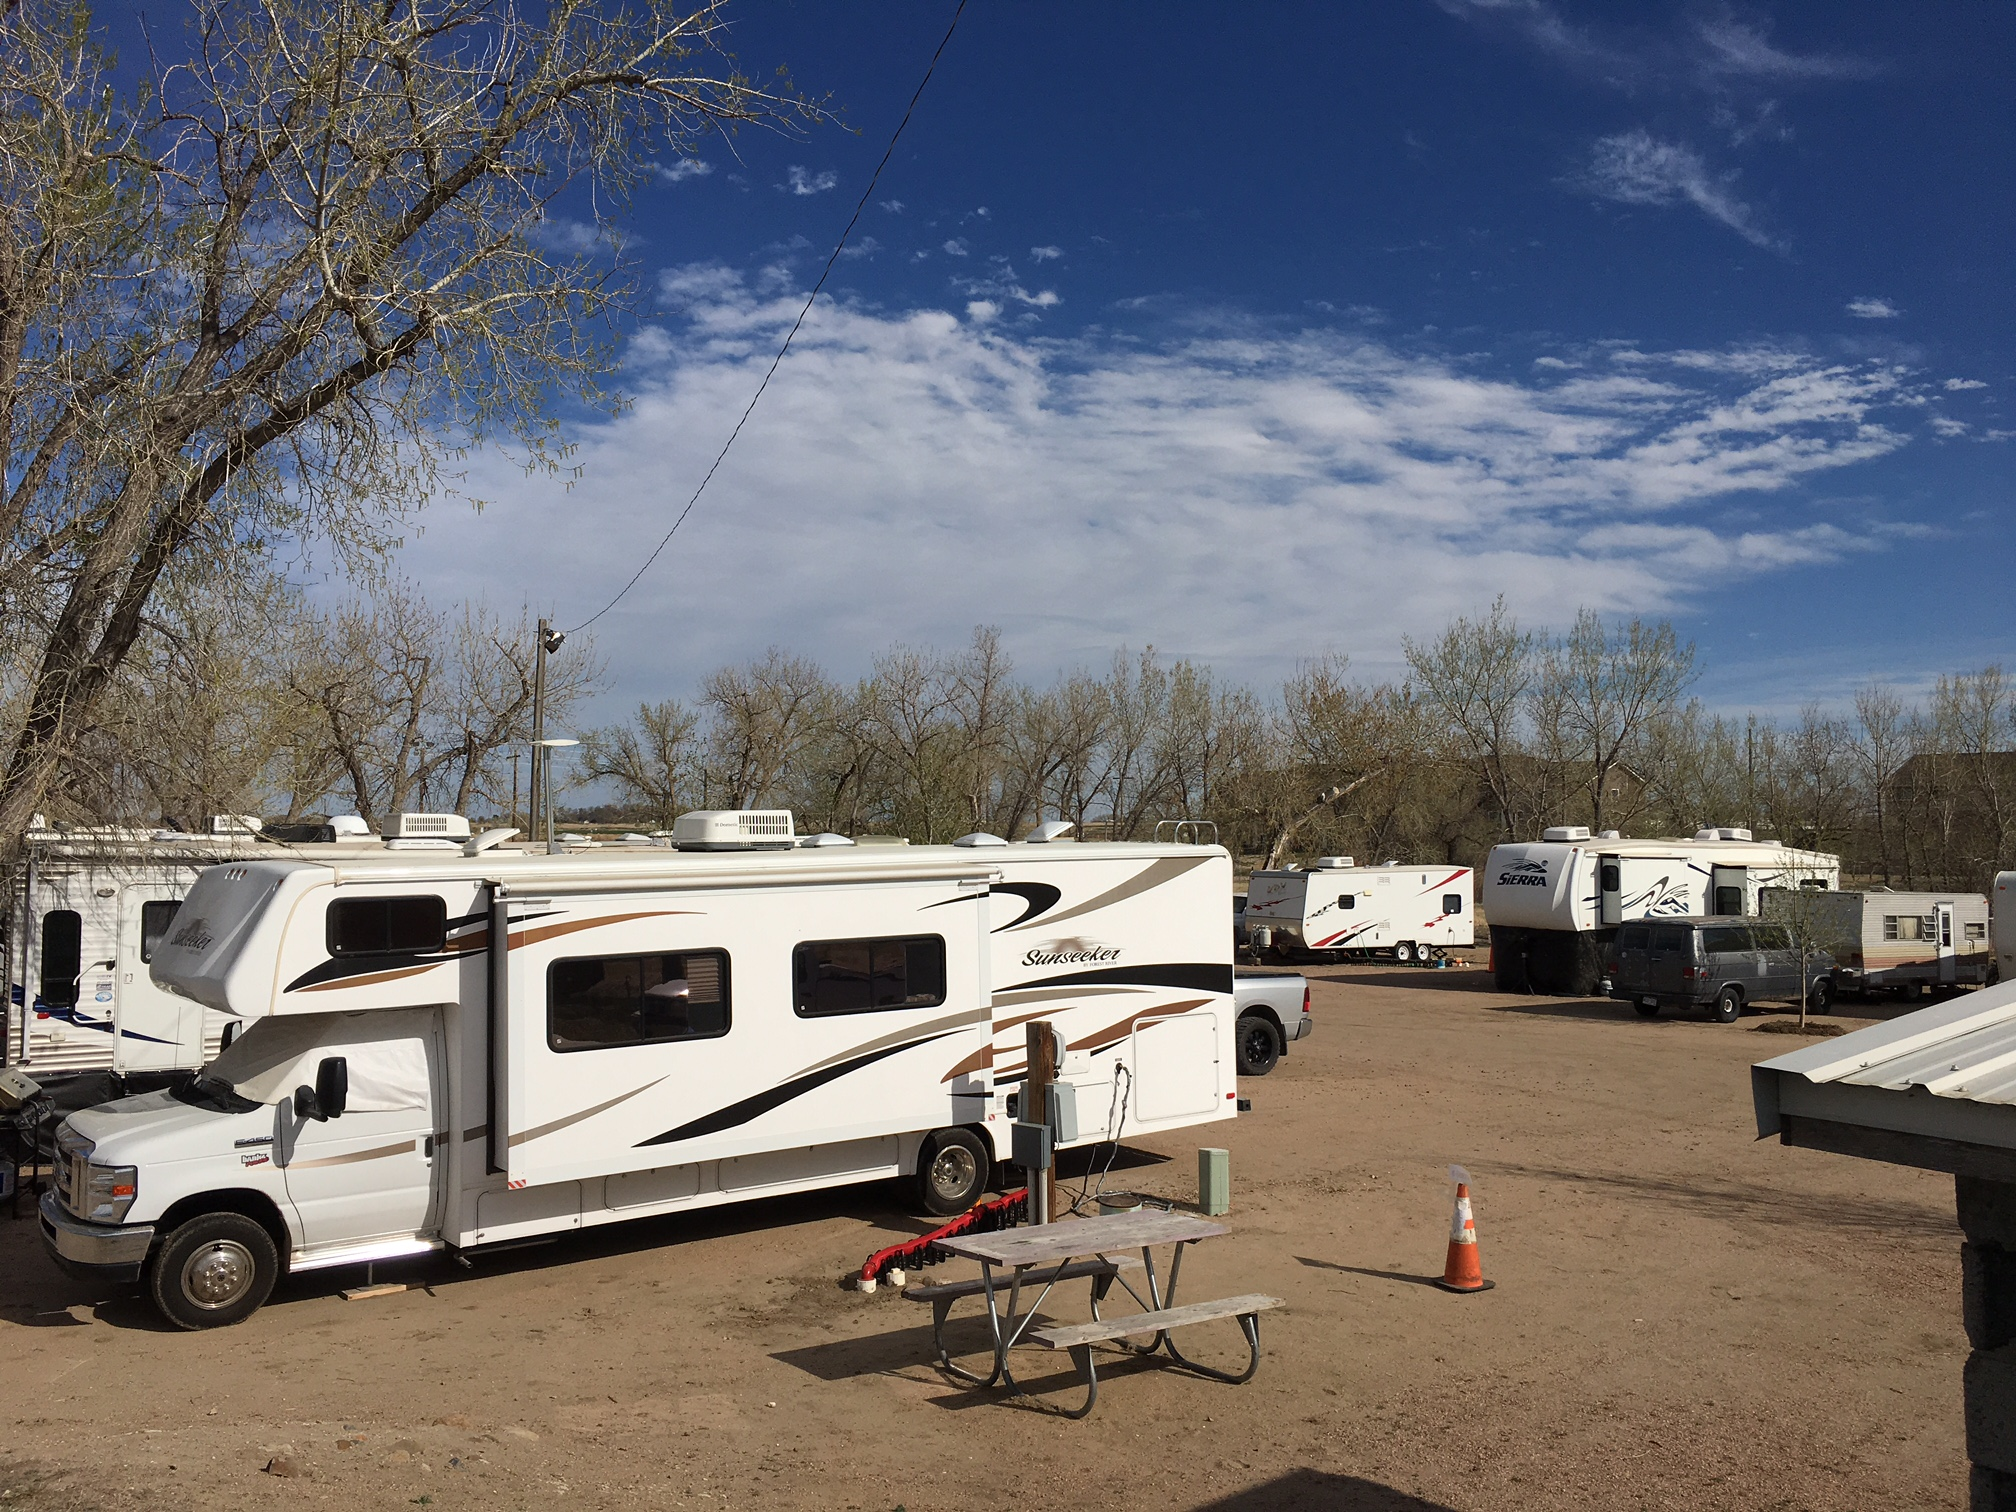 Silver Spur Campground image 2